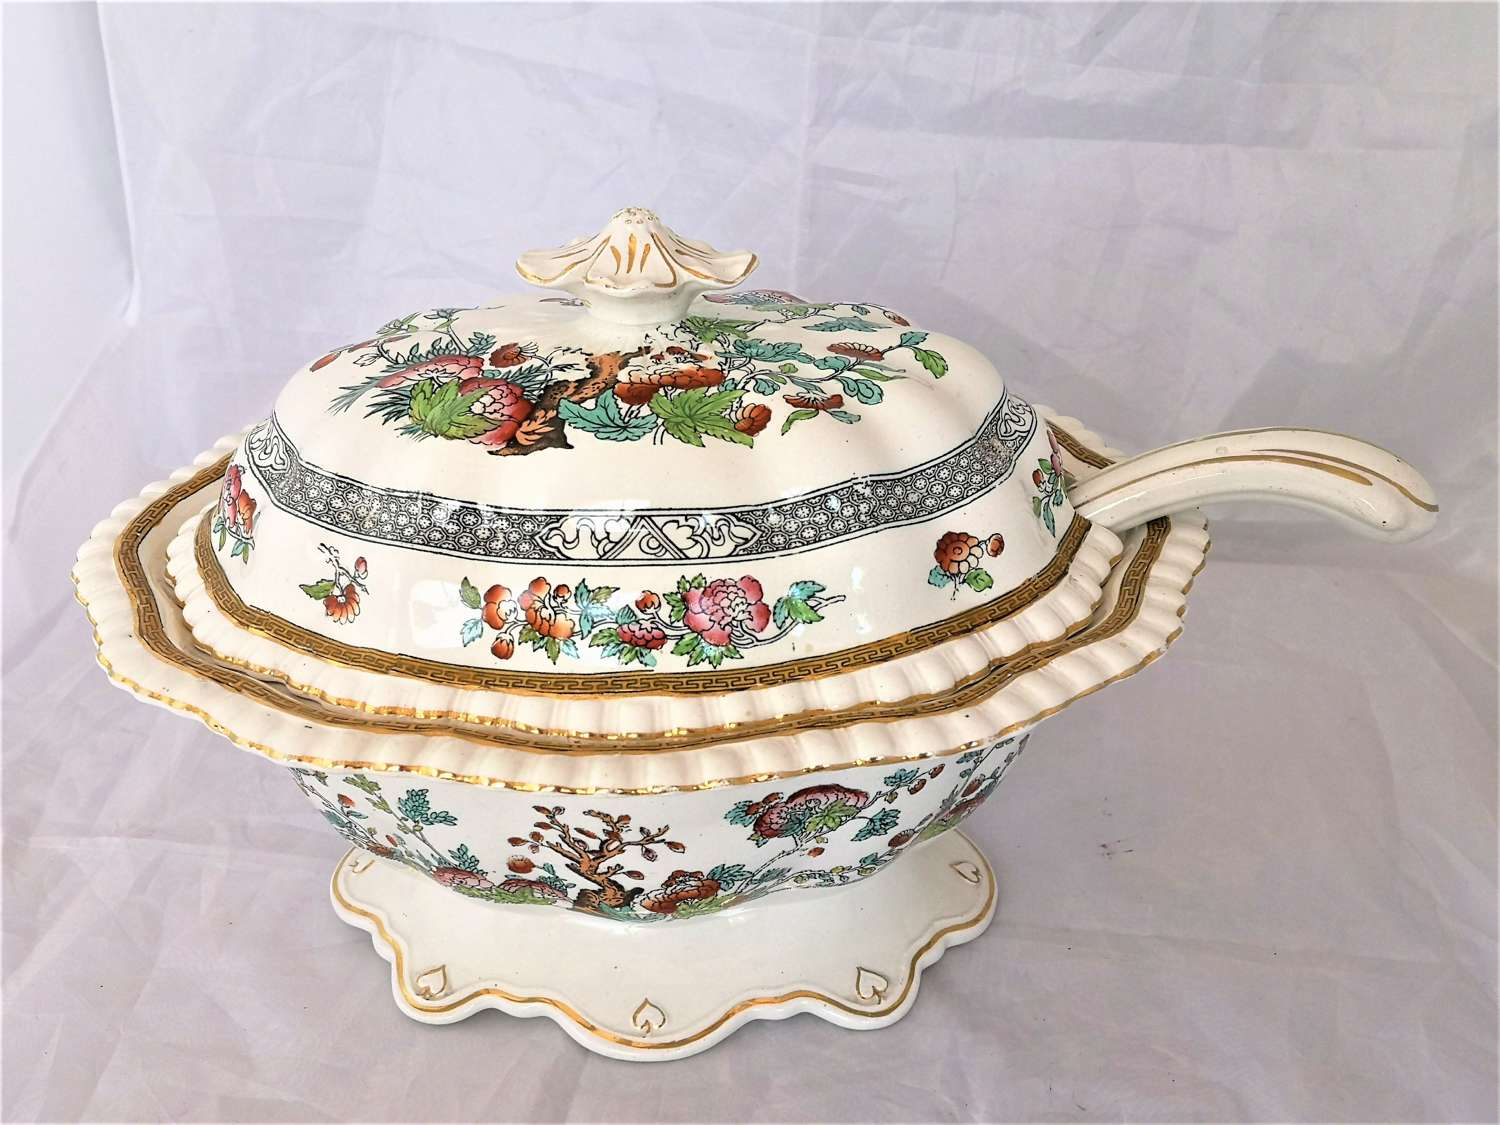 Large English 19th century soup tureen